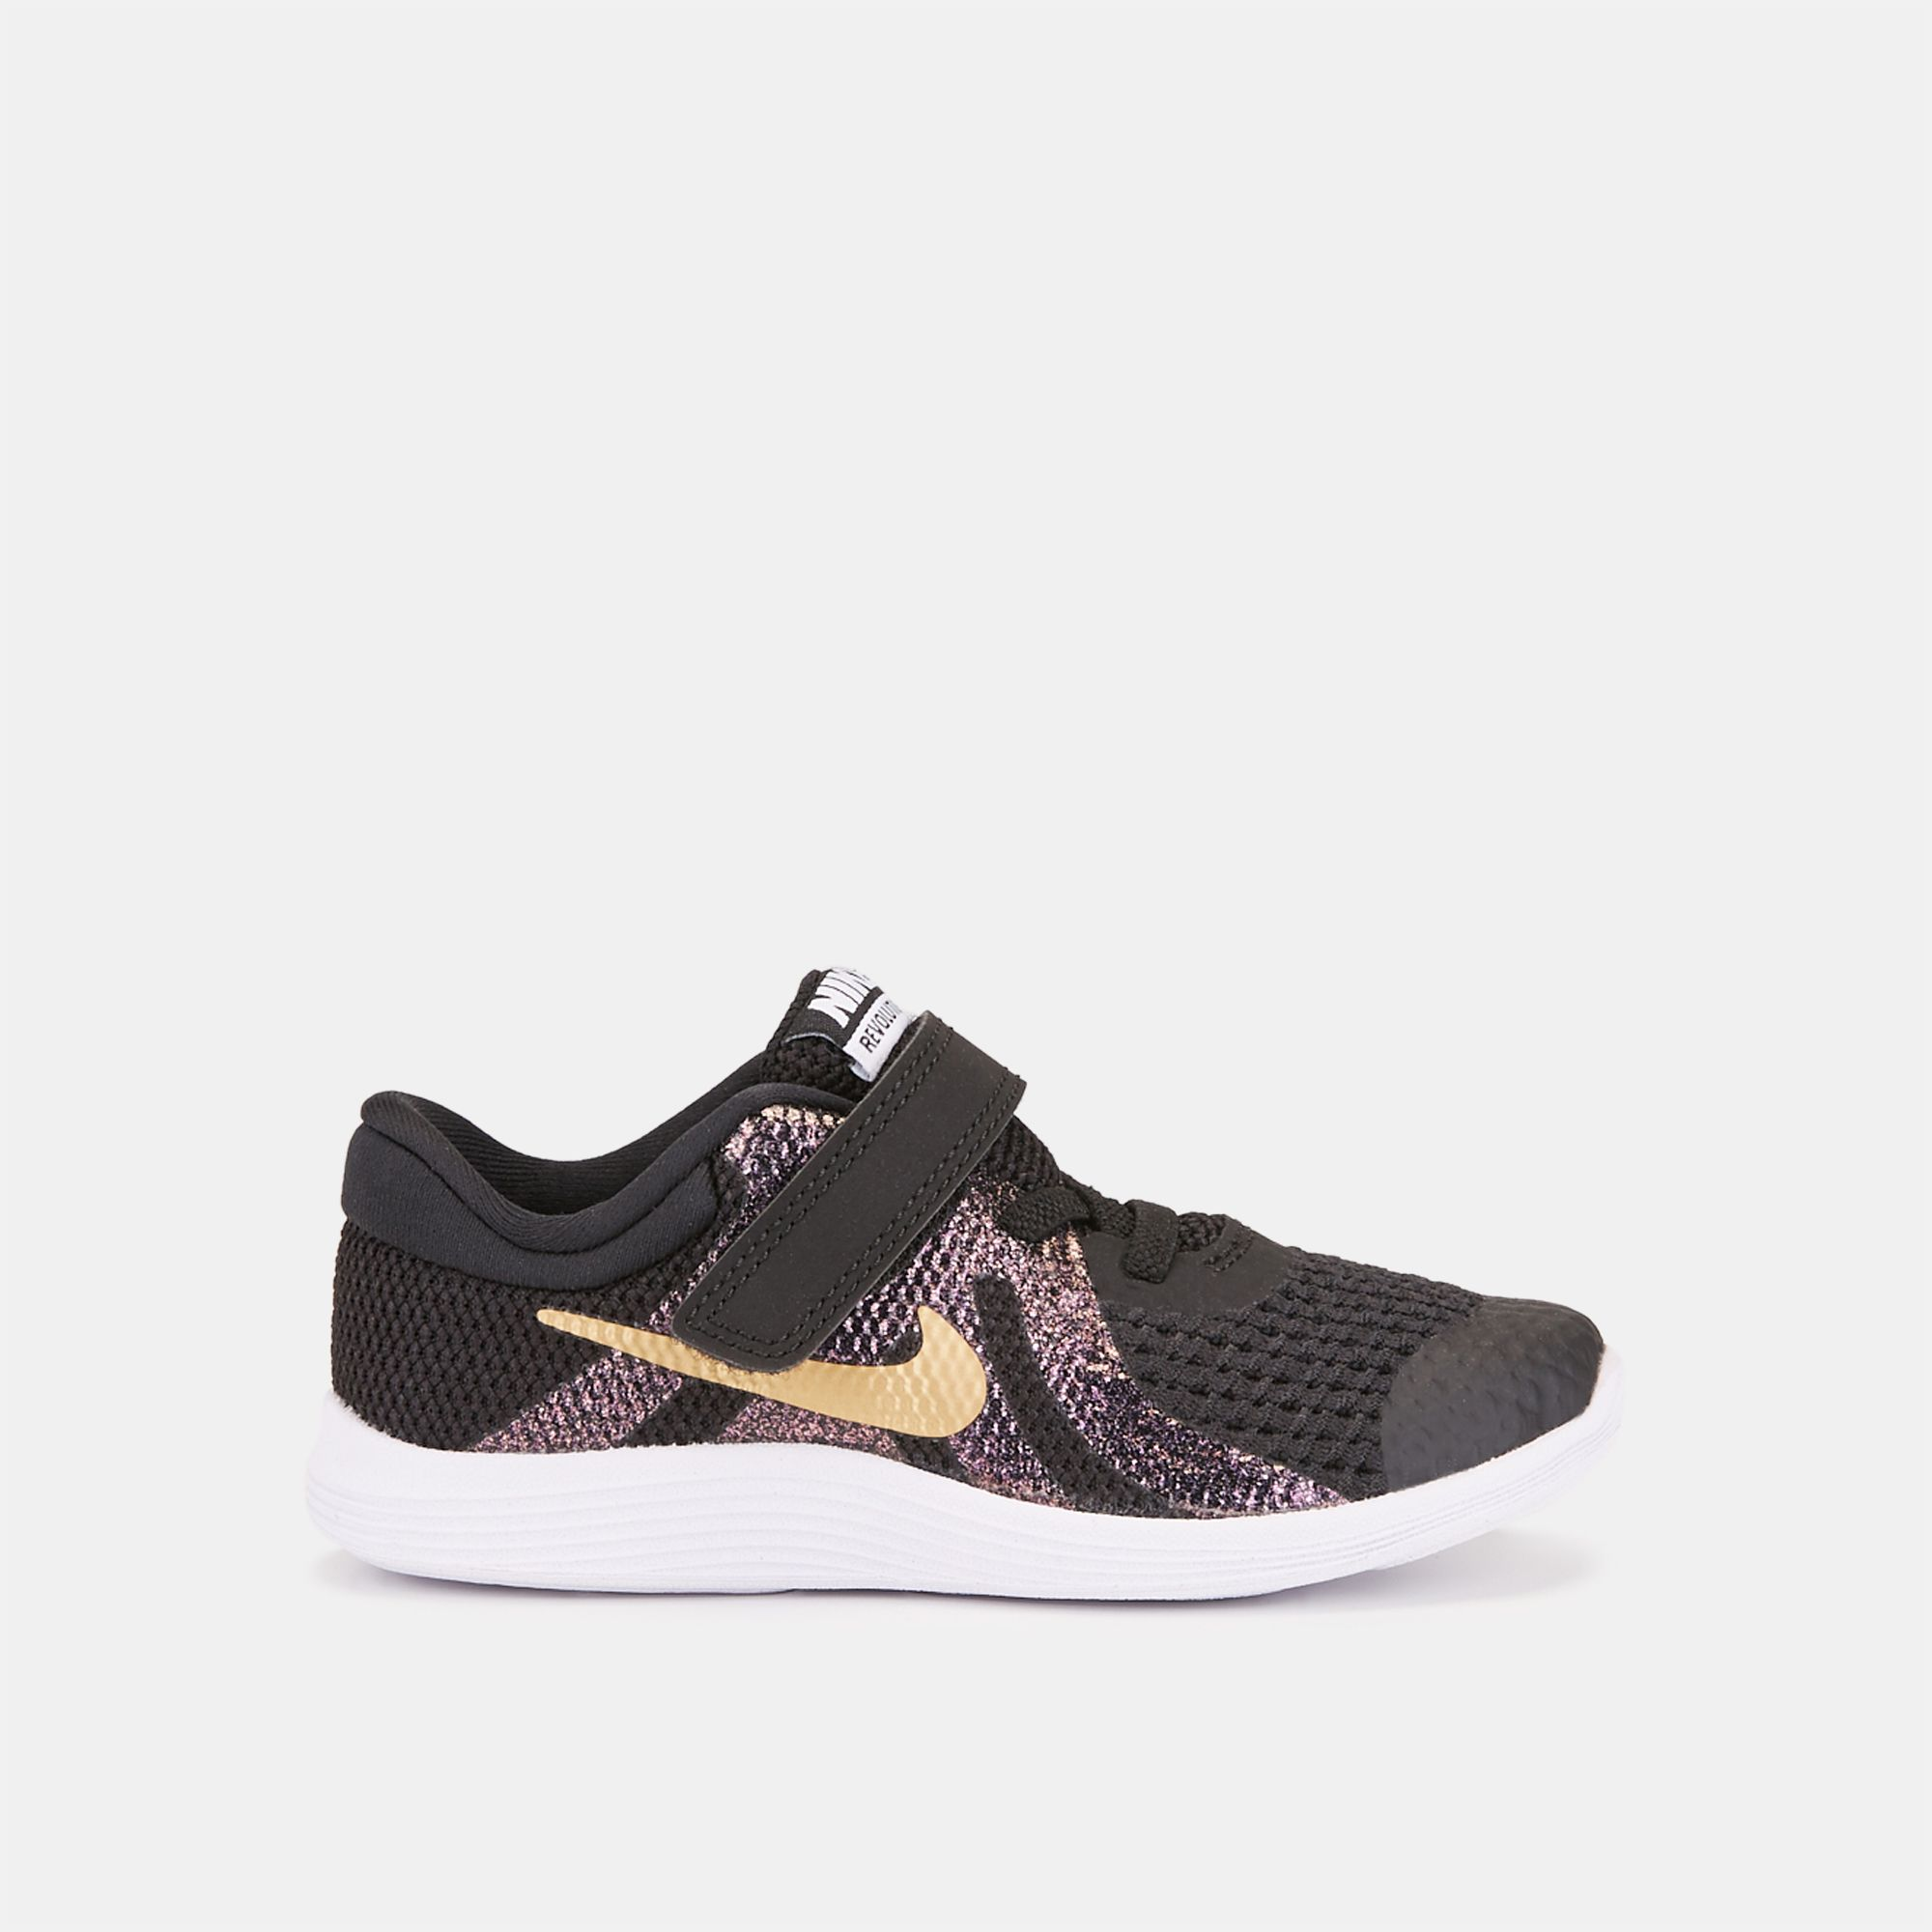 dfb0a374d4 Nike Kids' Revolution 4 Shine Shoe (Toddlers, 0-3 years) | Sneakers | Shoes  | Sports Fashion | Sports | SSS